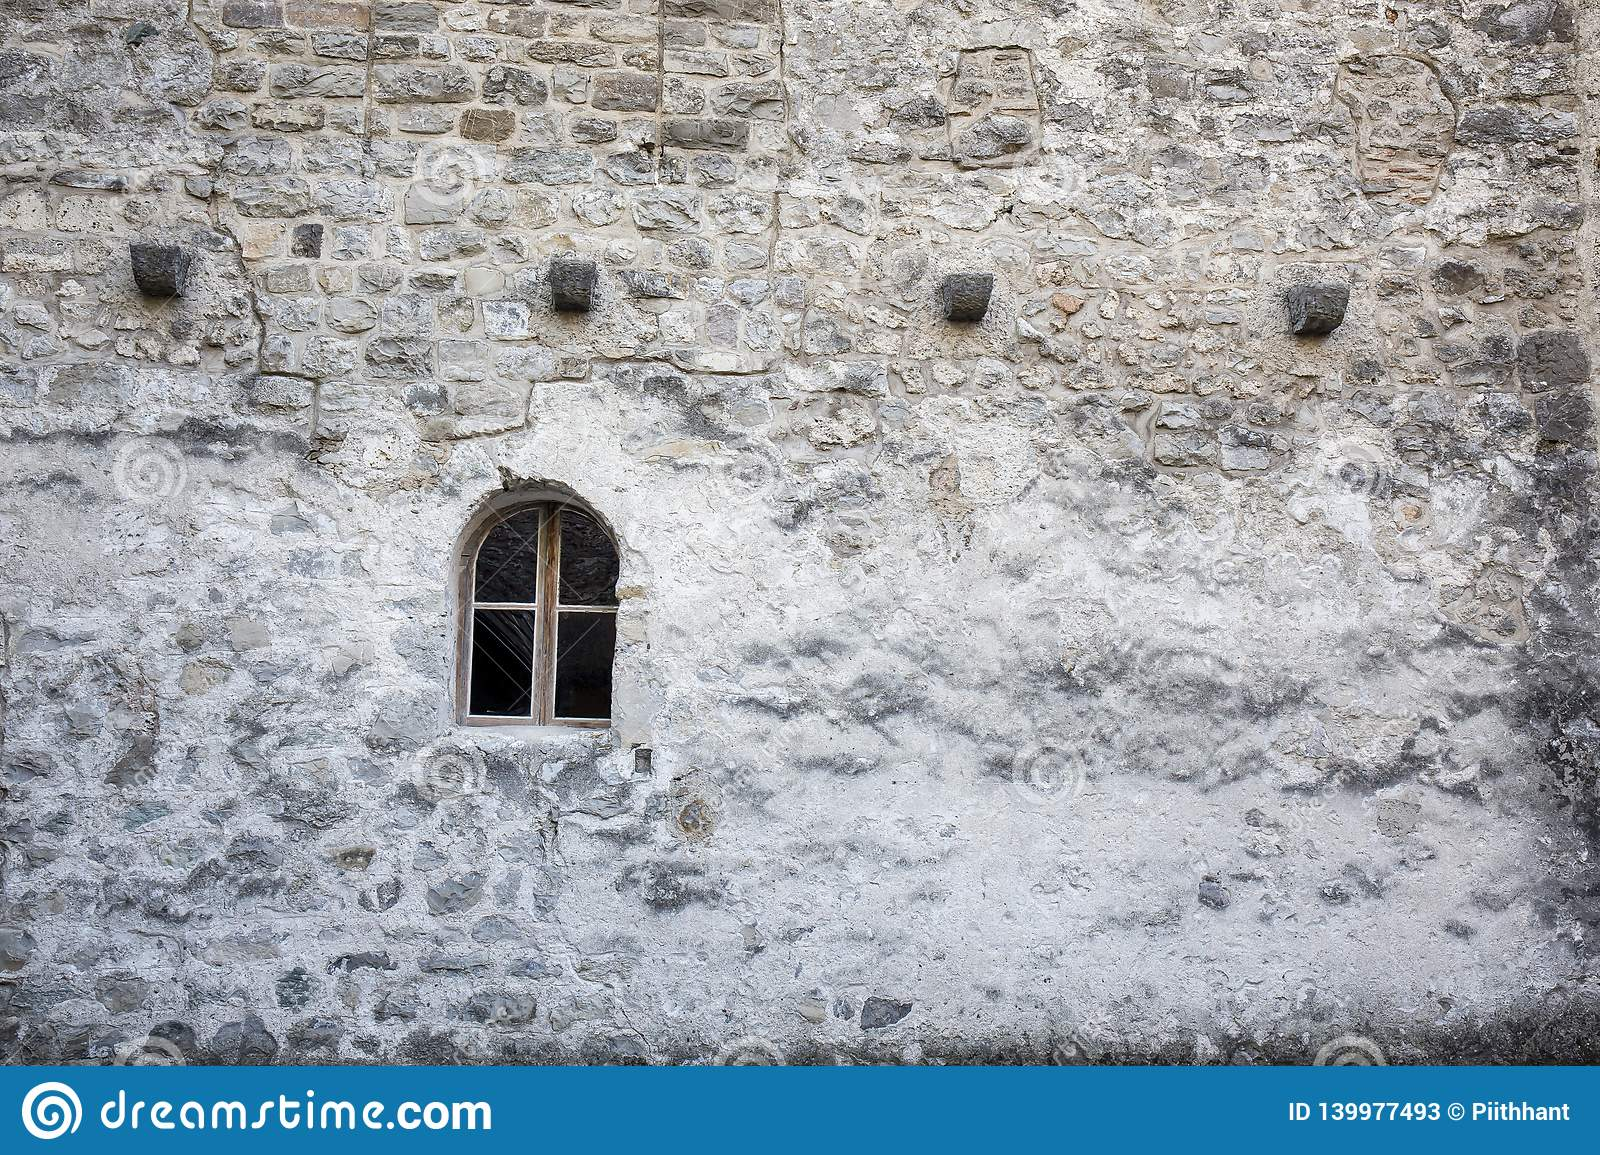 Window on the wall at Chillon castle - Veytaux, Switzerland